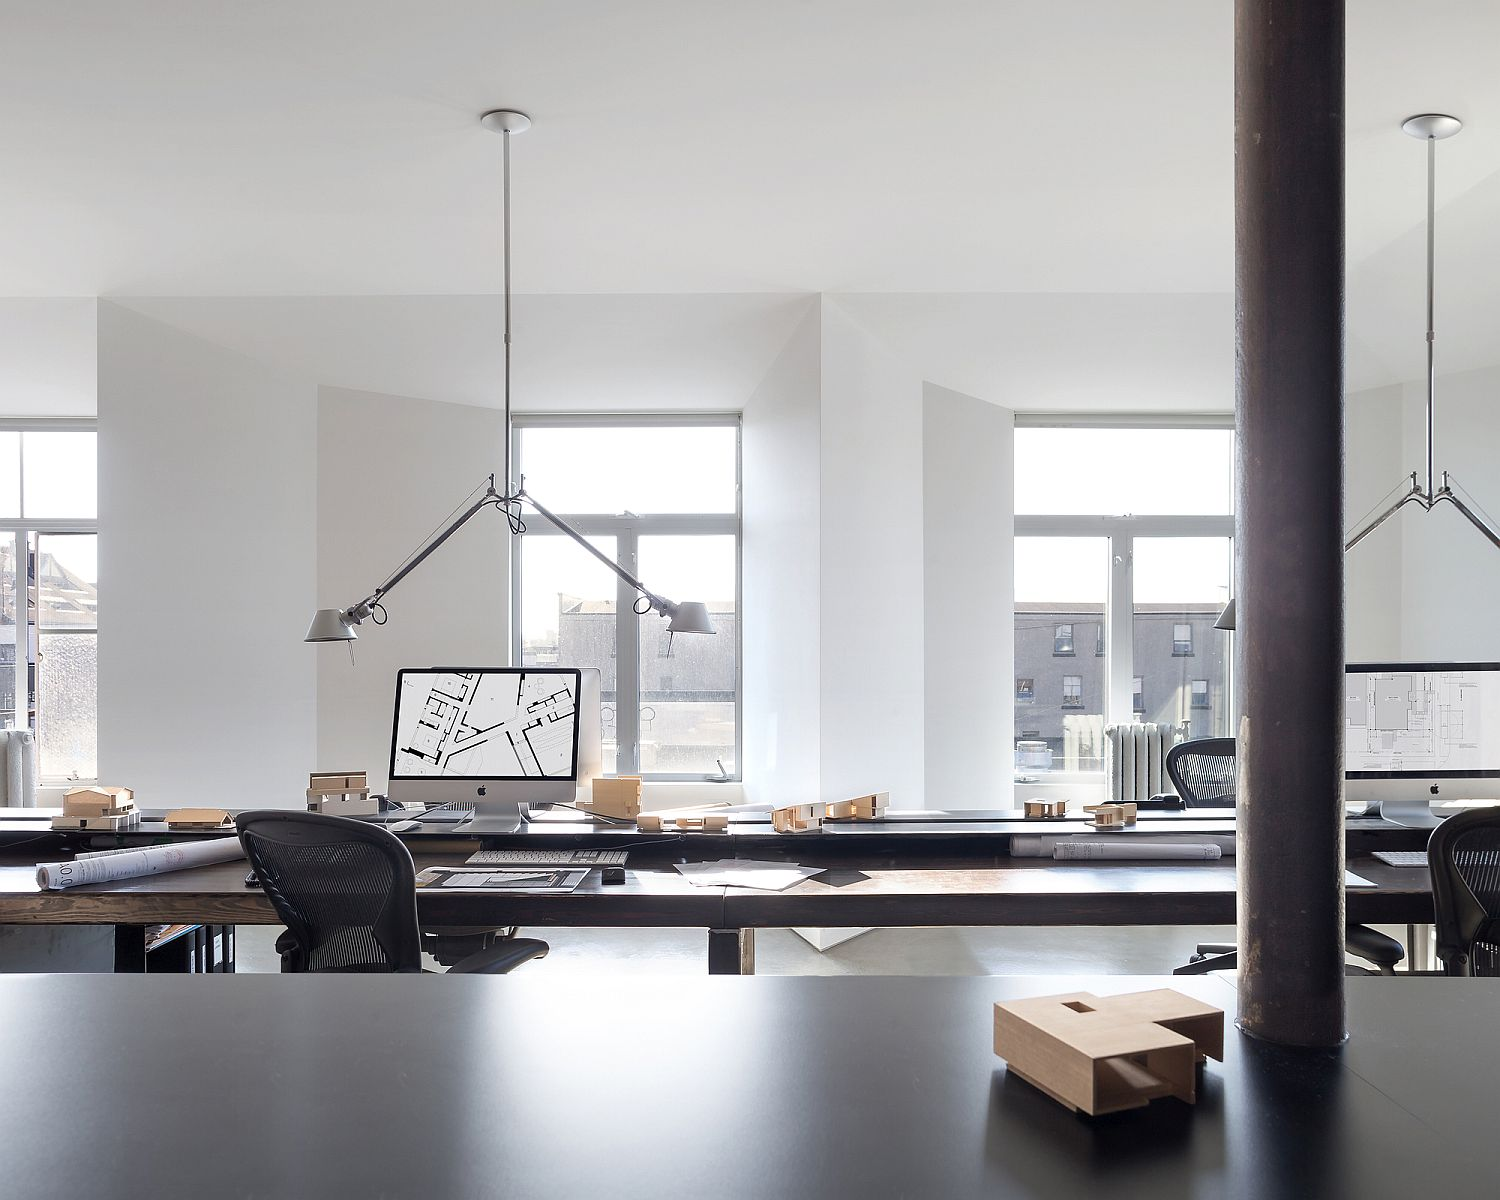 Workspaces-inside-the-office-feel-polished-and-minimal